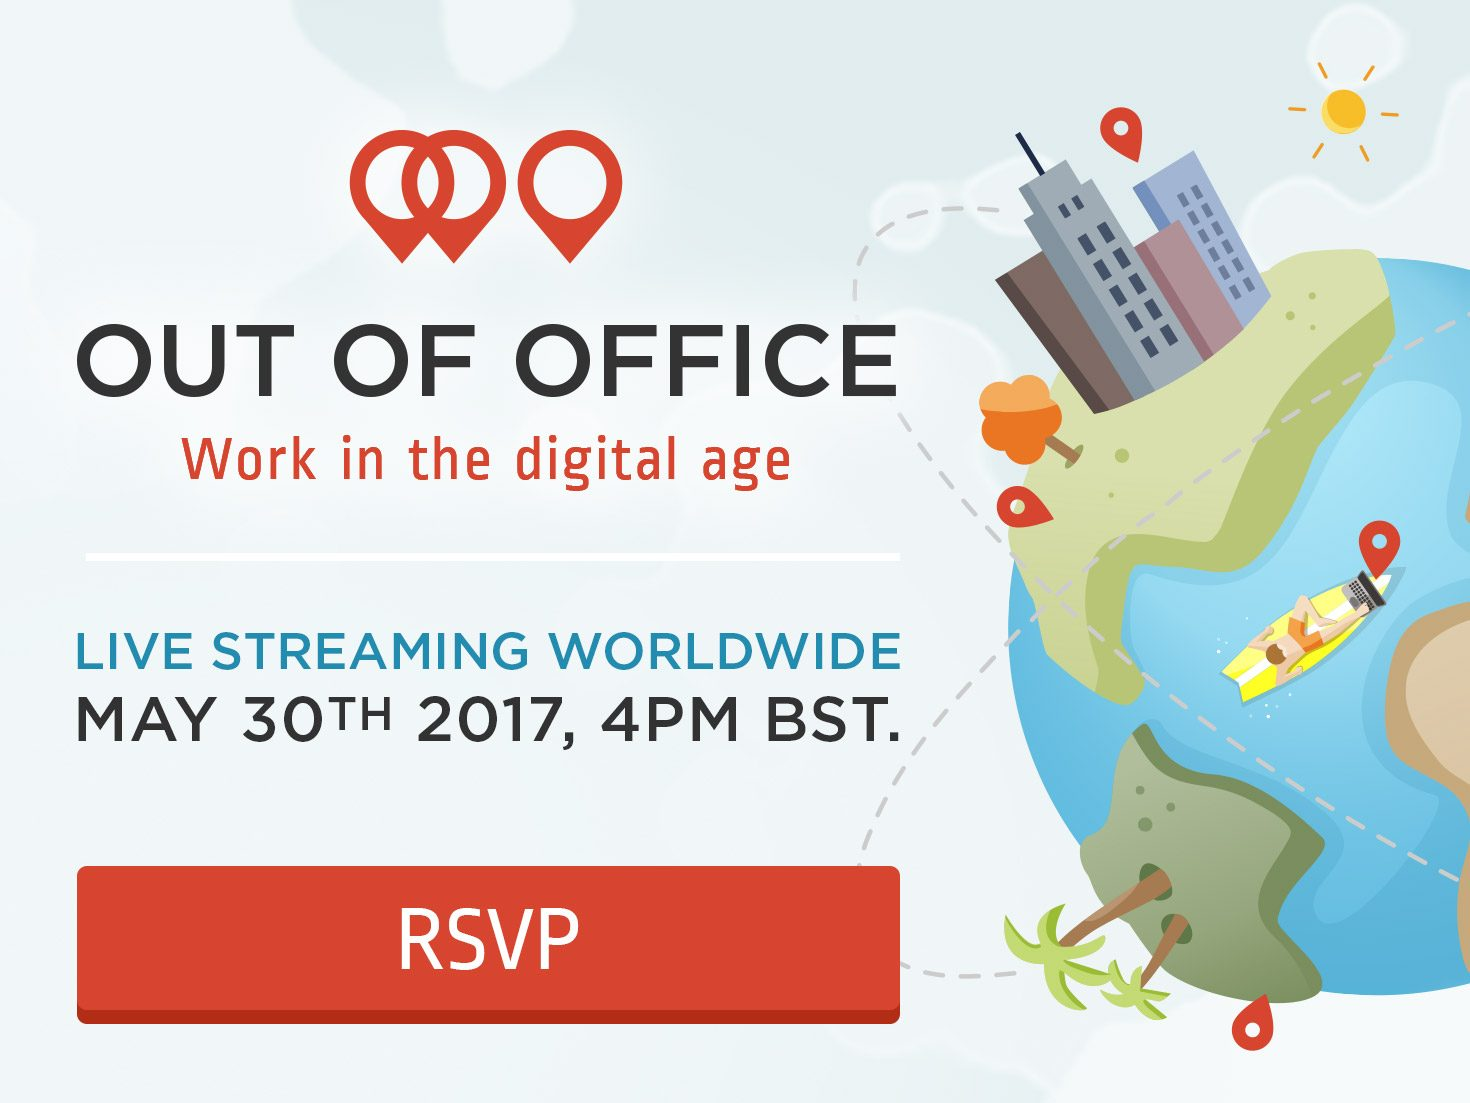 Out of Office 2017